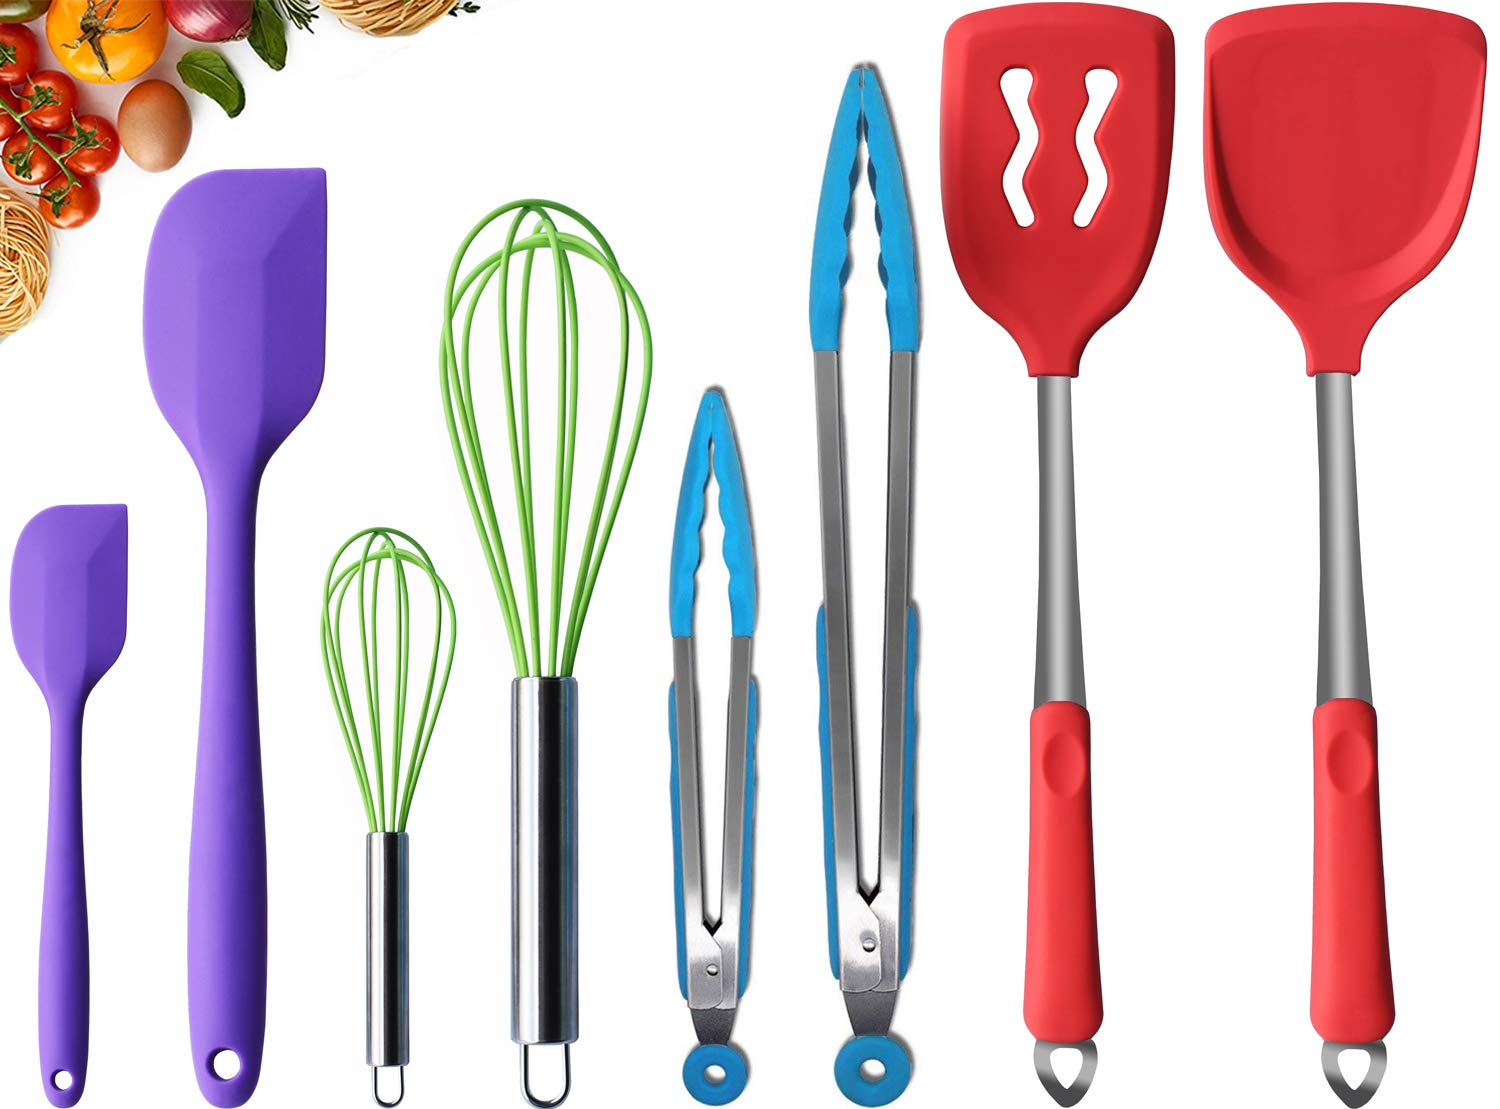 Kitchen Utensil Set Durable 8 Cooking Utensils Nonstick Silicone and Stainless Steel Utensils BPA-free Non Toxic Spatula Serving Tongs Turner Whisk Set Best Chef Kitchen Tool Set by TWICHAN